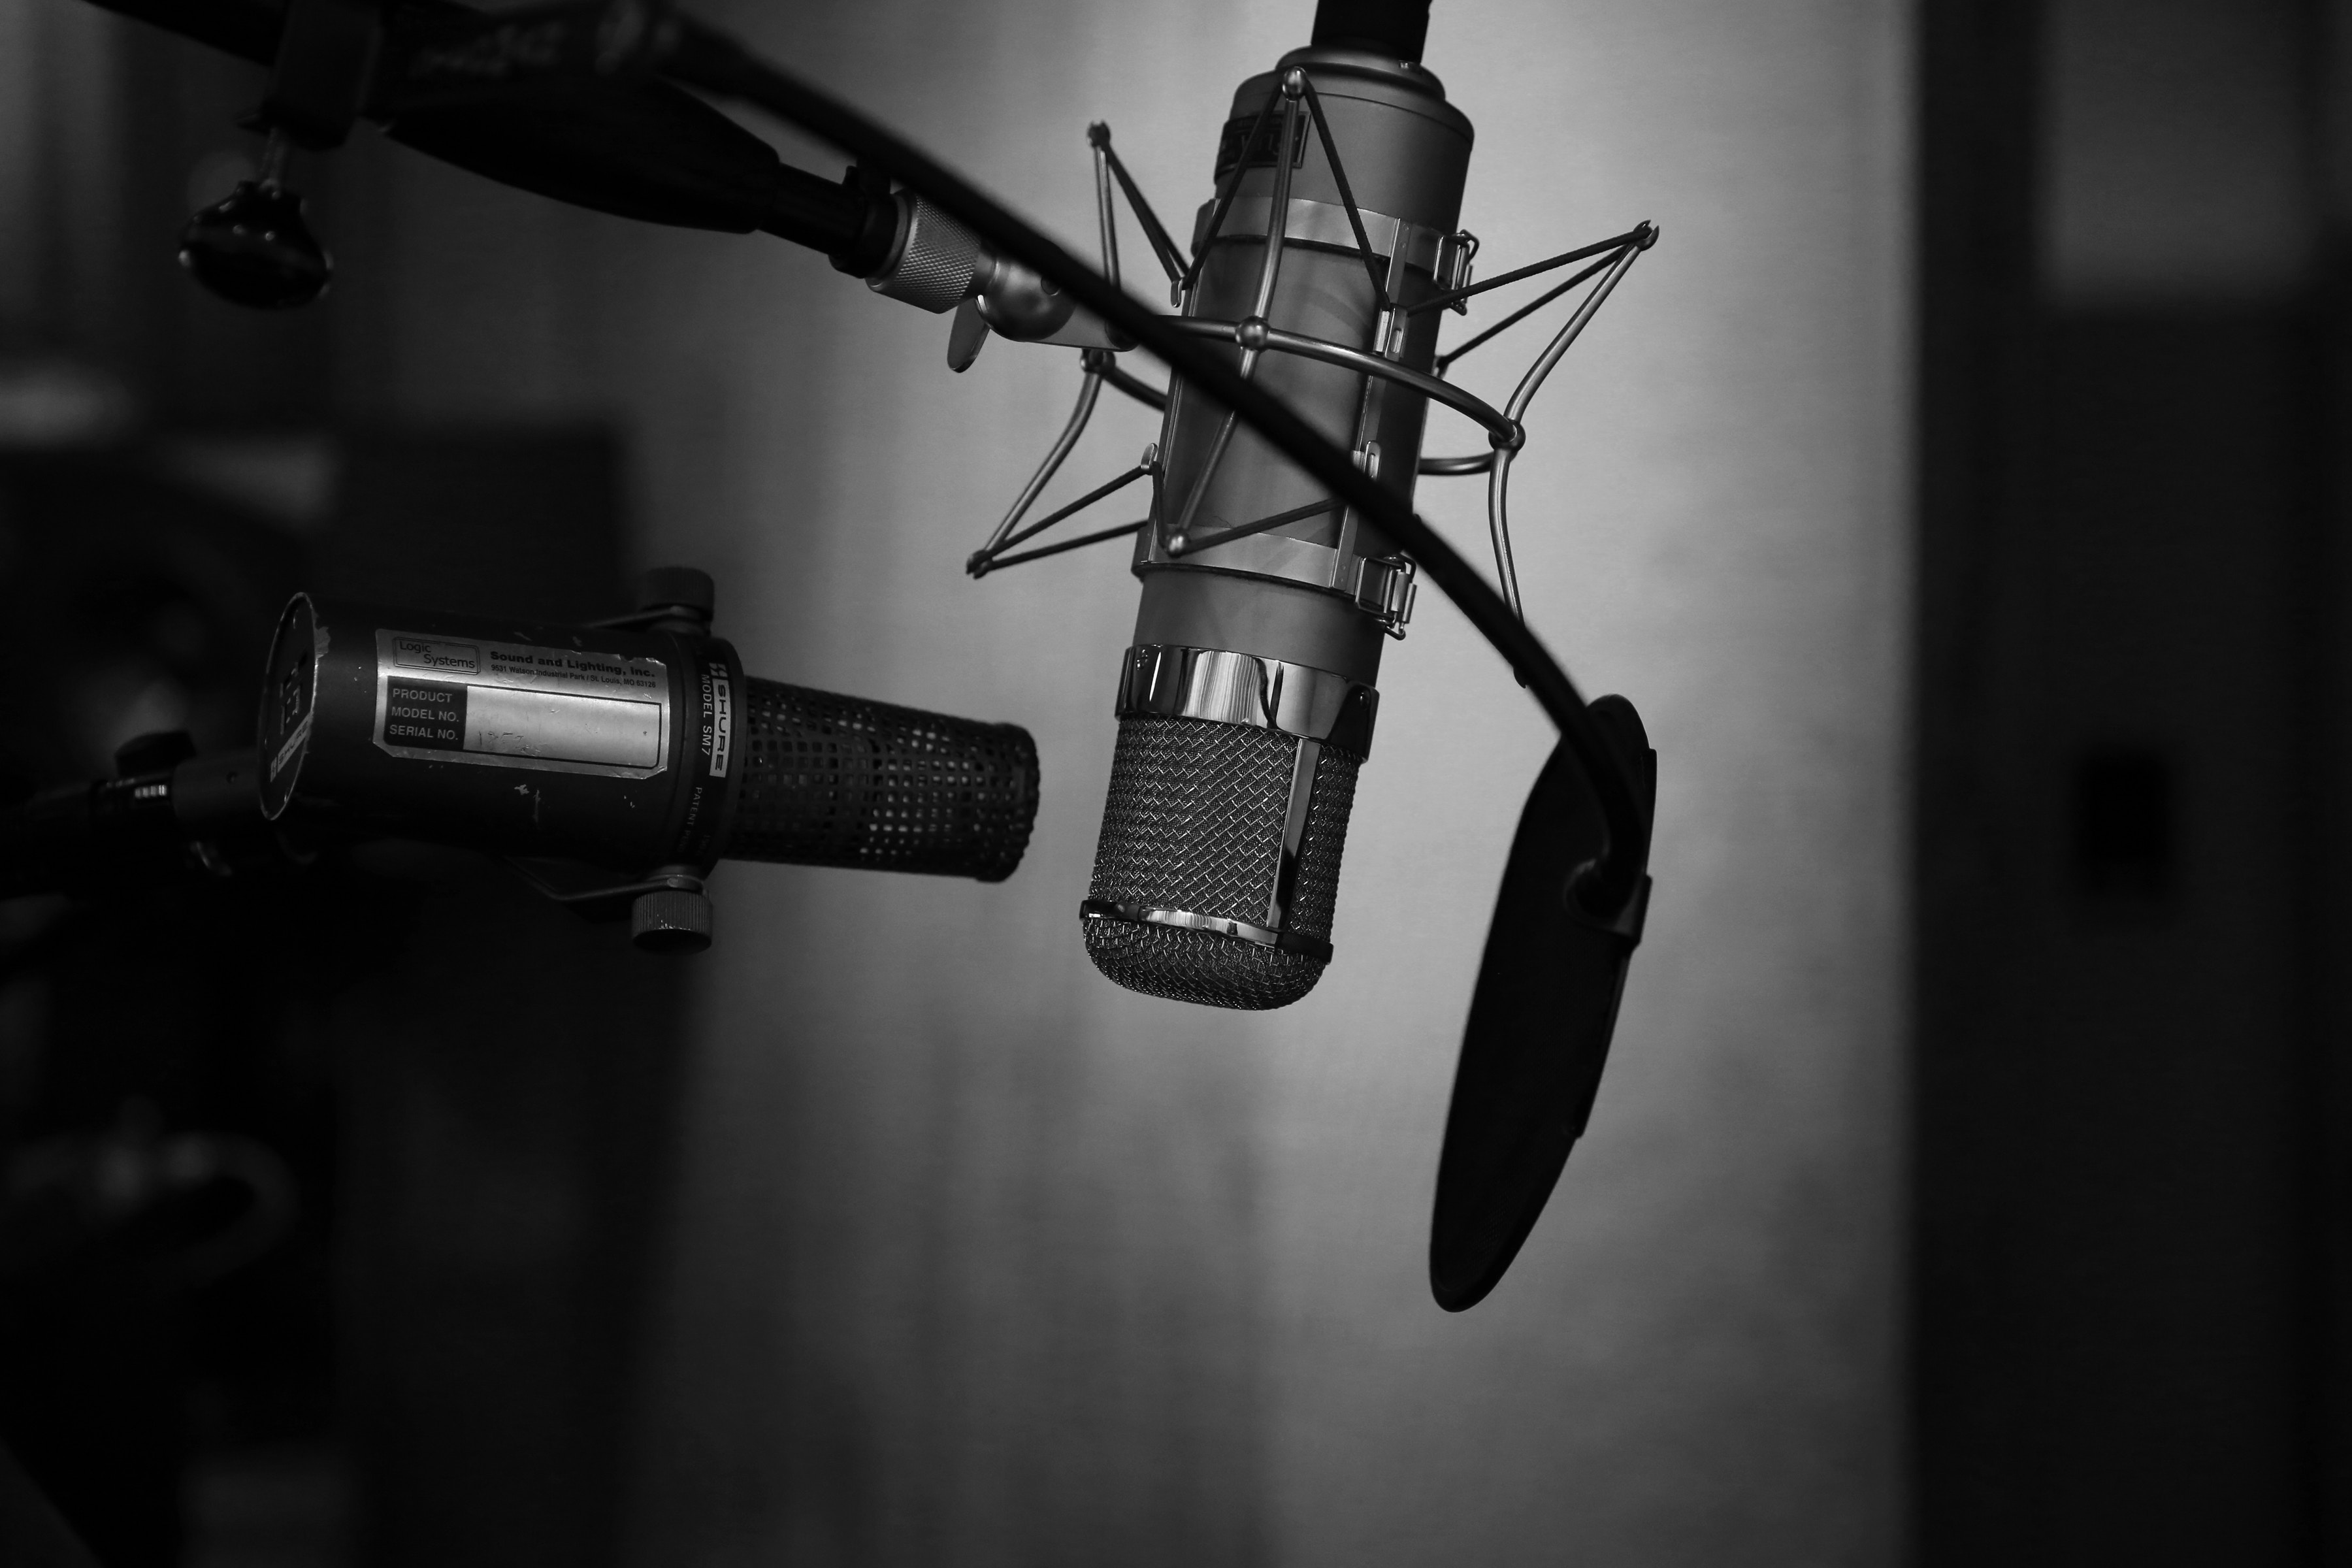 Black and white photo of microphone in sound booth